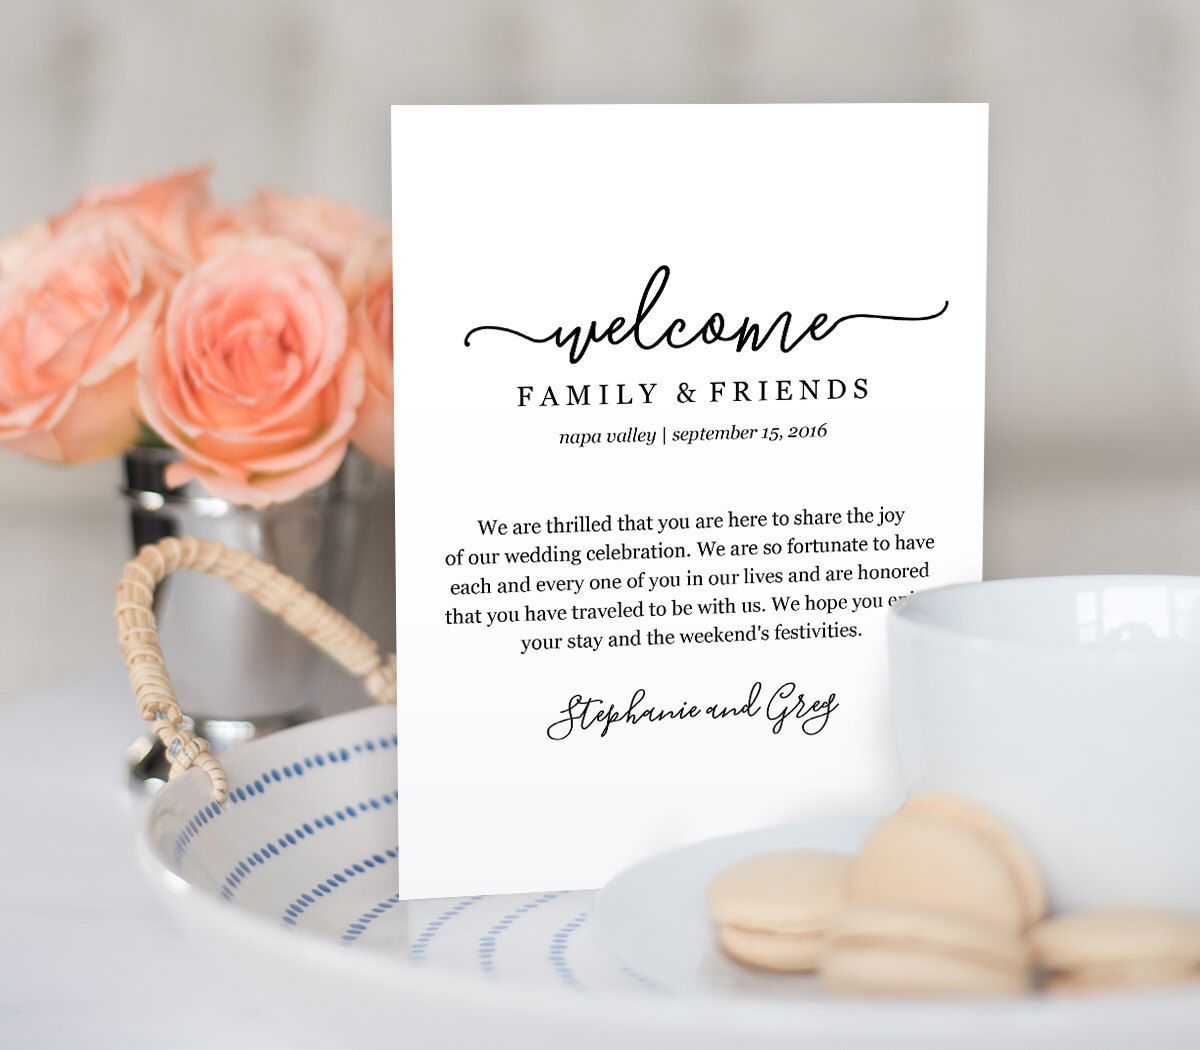 001 Impressive Cruise Wedding Welcome Letter Template Image Full